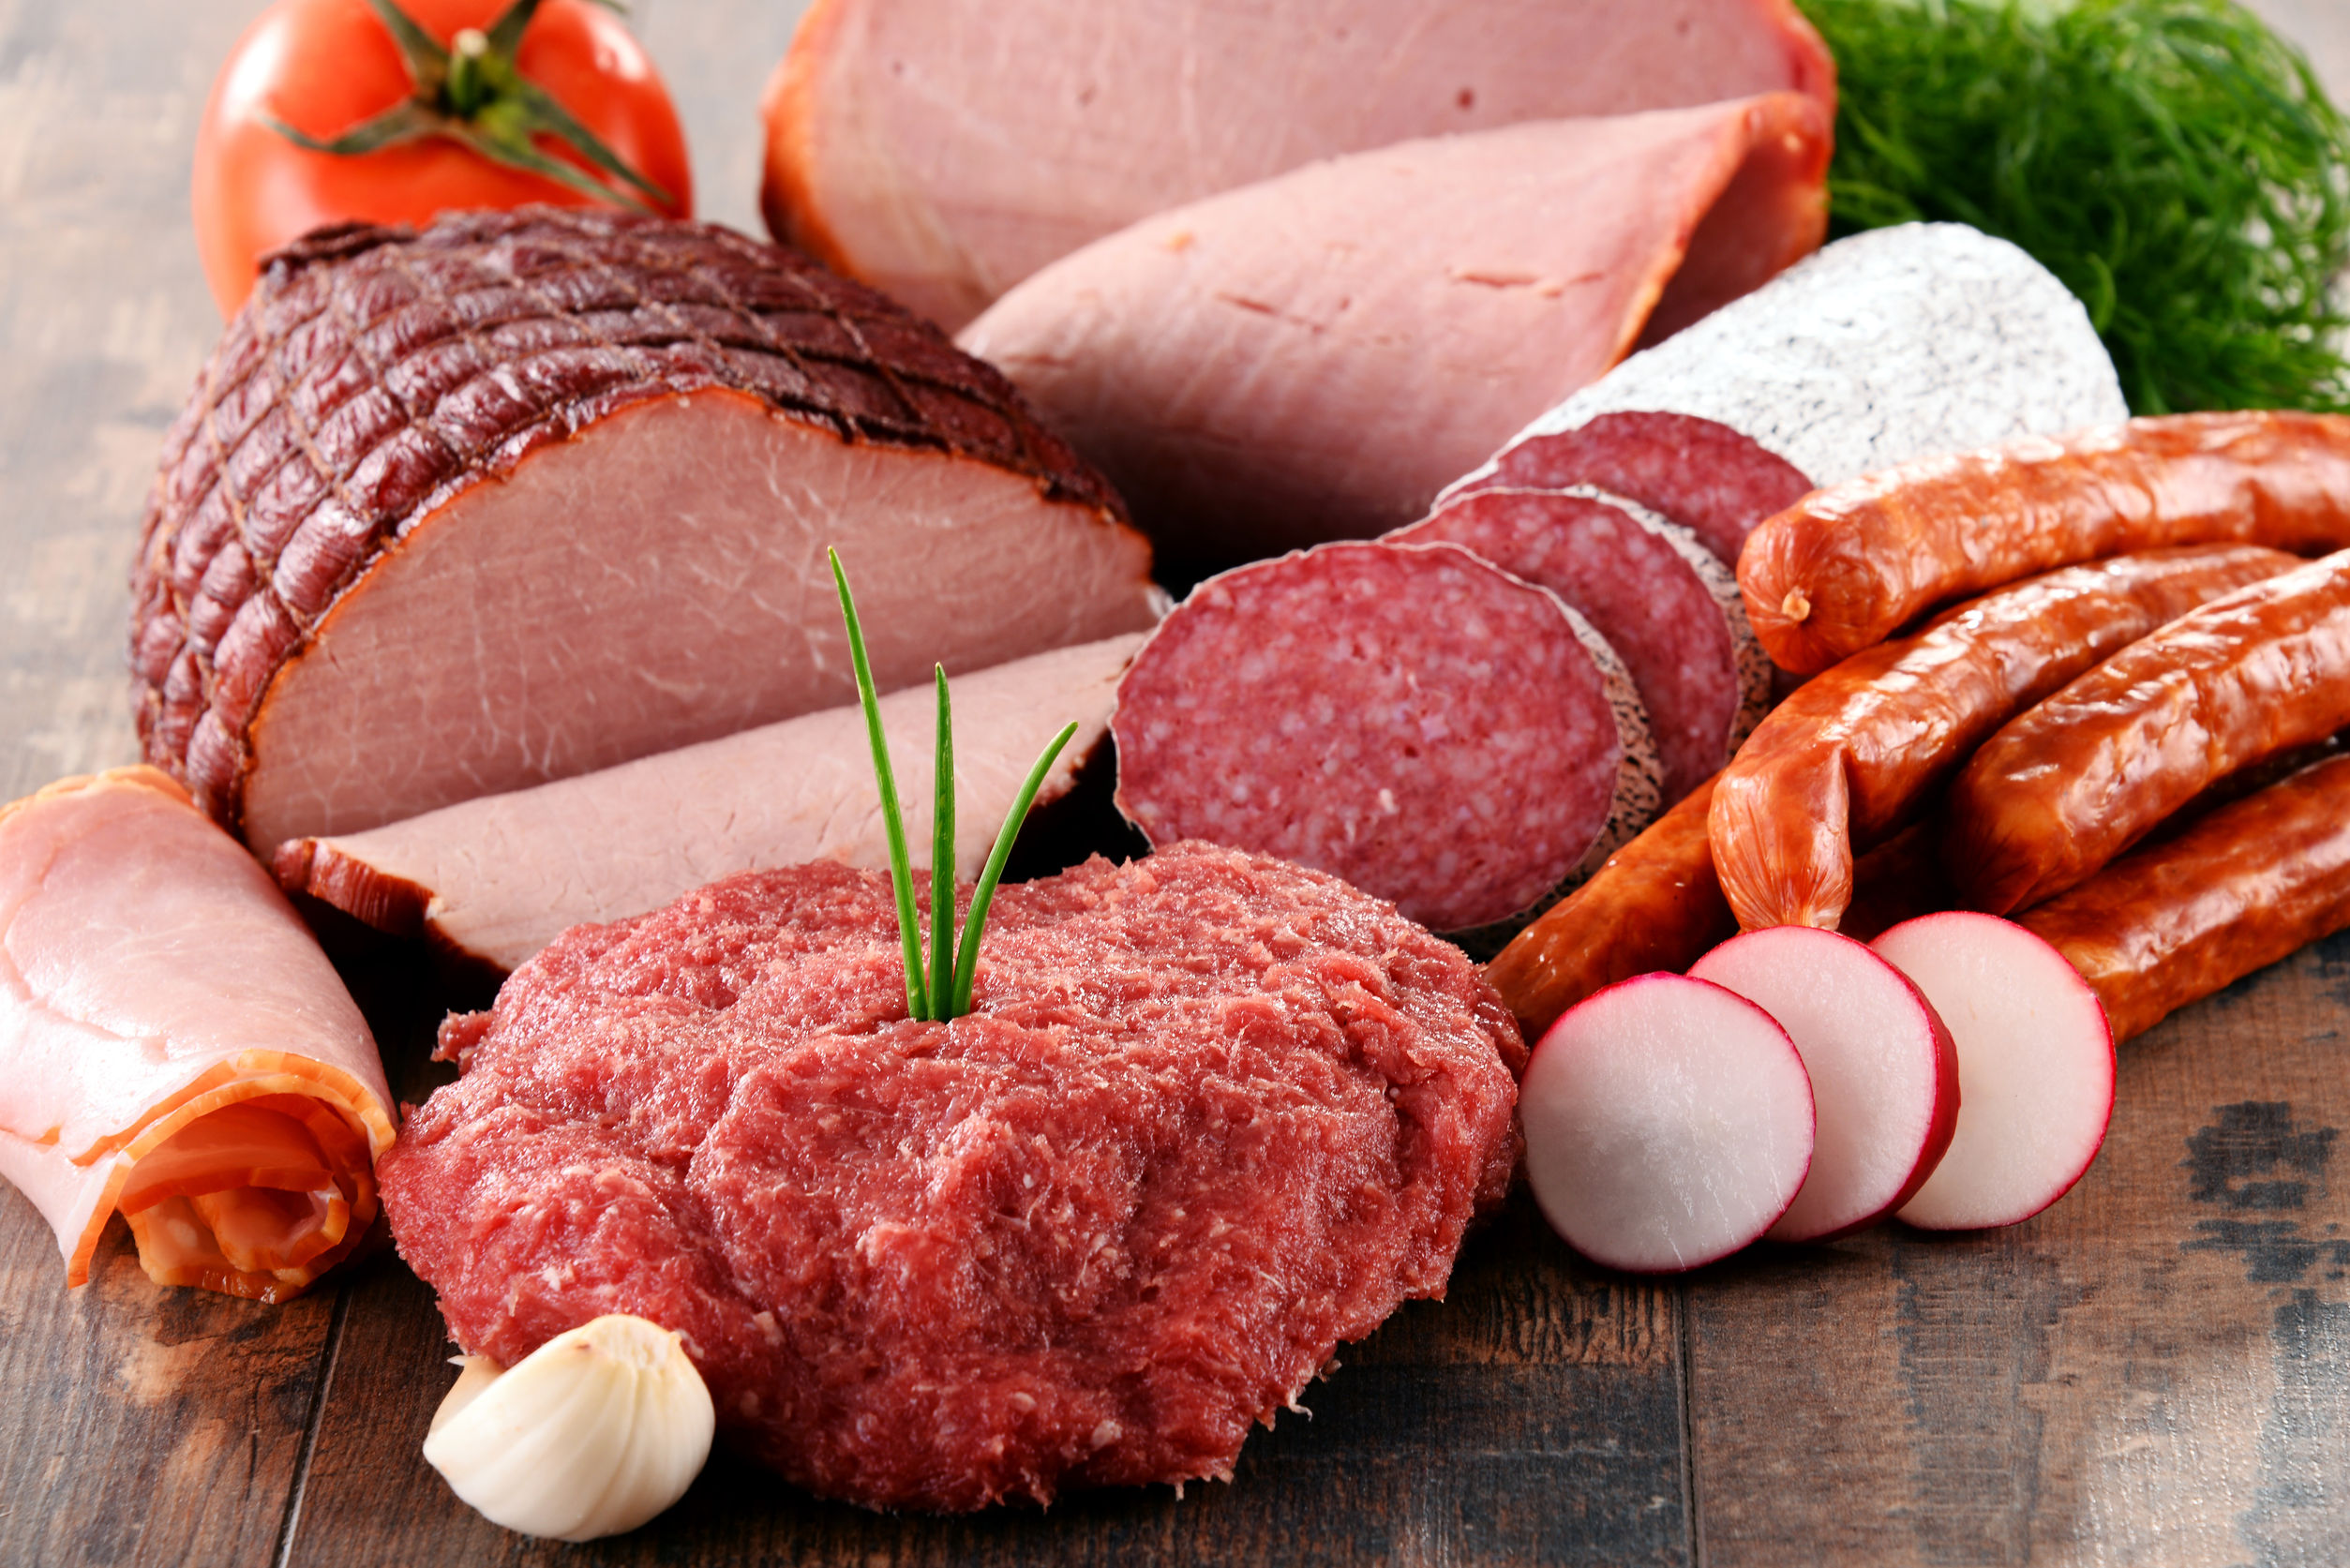 38686988 - assorted meat products including ham and sausages.